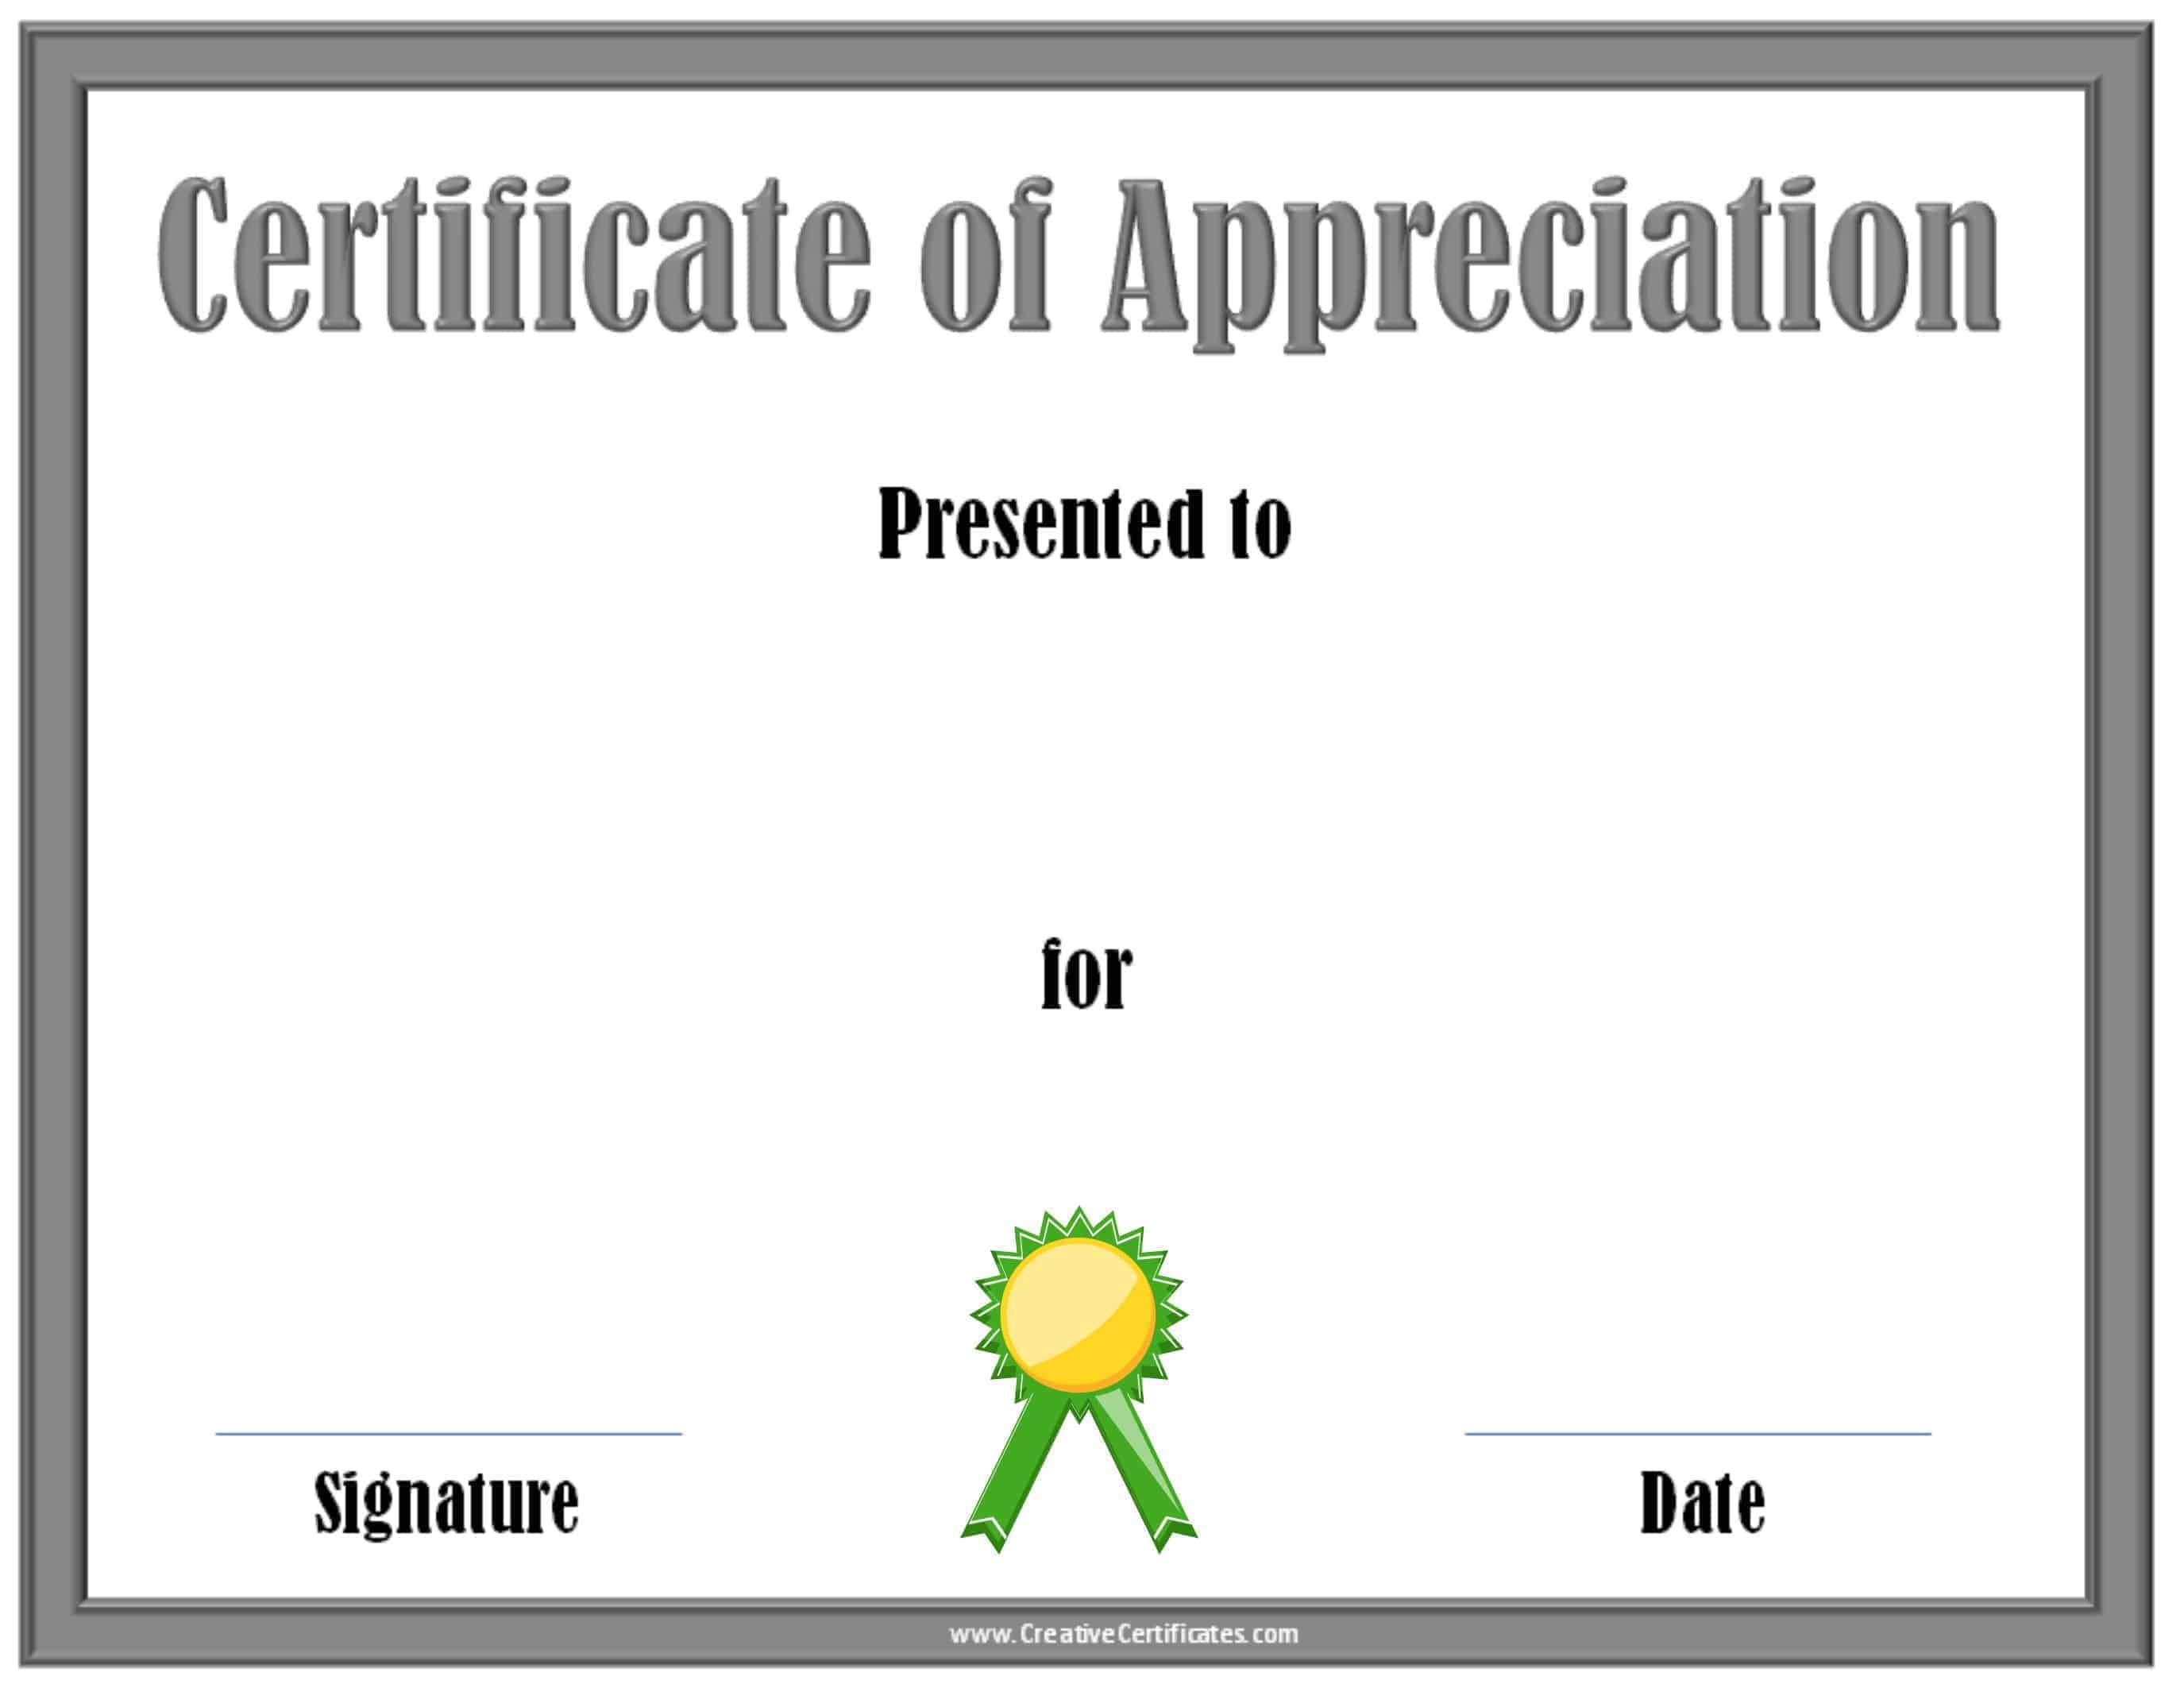 Certificate of appreciation template printable award with a silver border and a green award ribbon xflitez Images